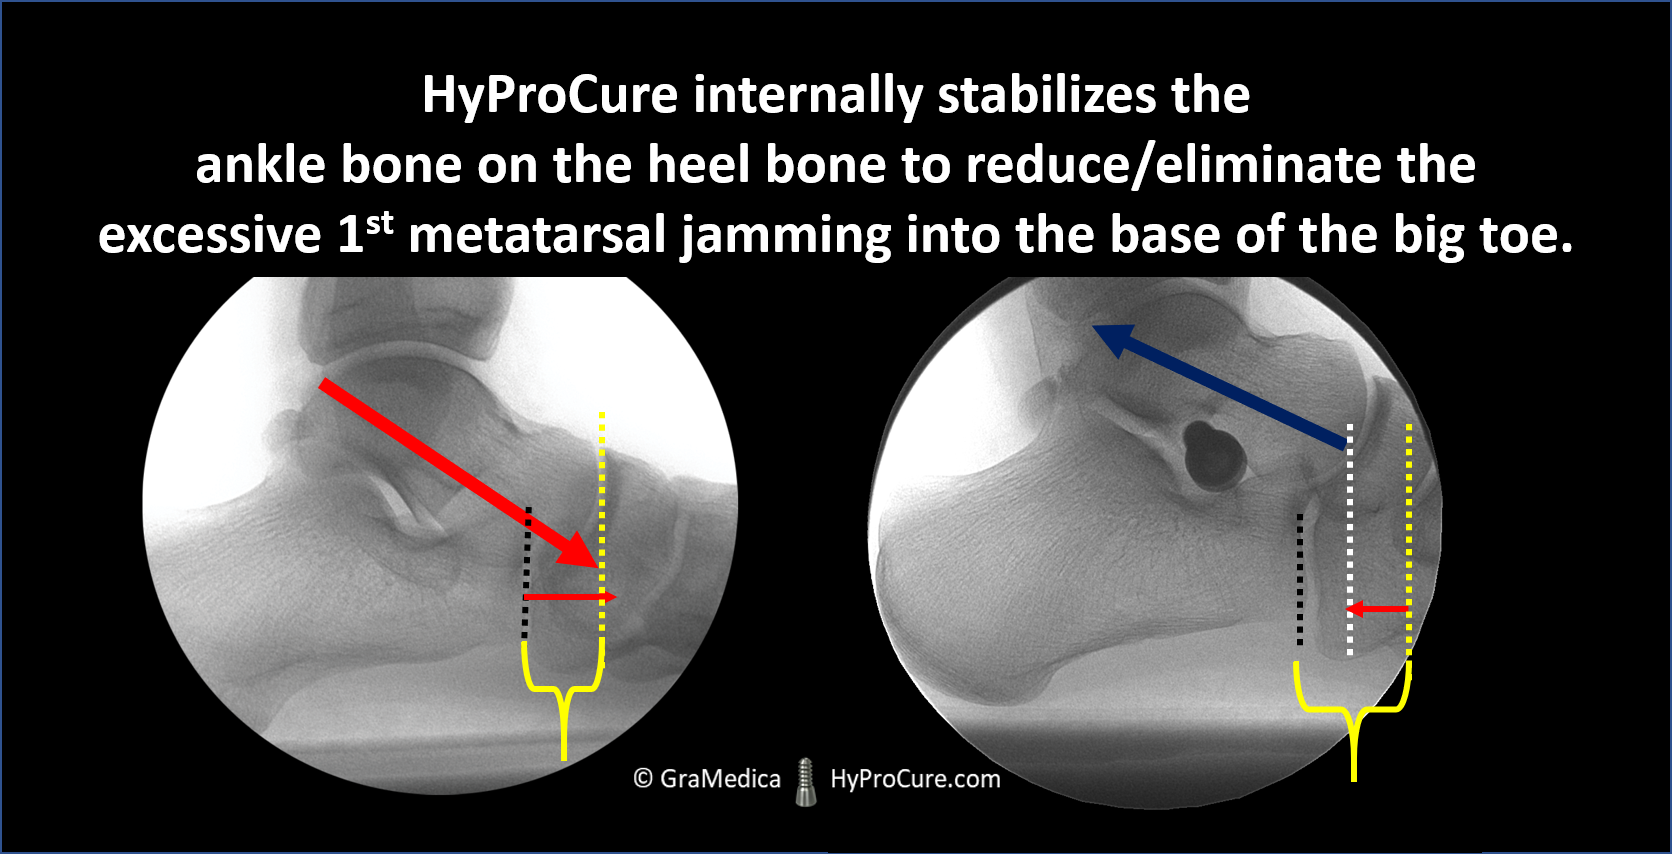 HyProCure internally stabilizes the ankle bone on the heel bone to reduce/eliminate the excessive 1st metatarsal jamming into the base of the big toe